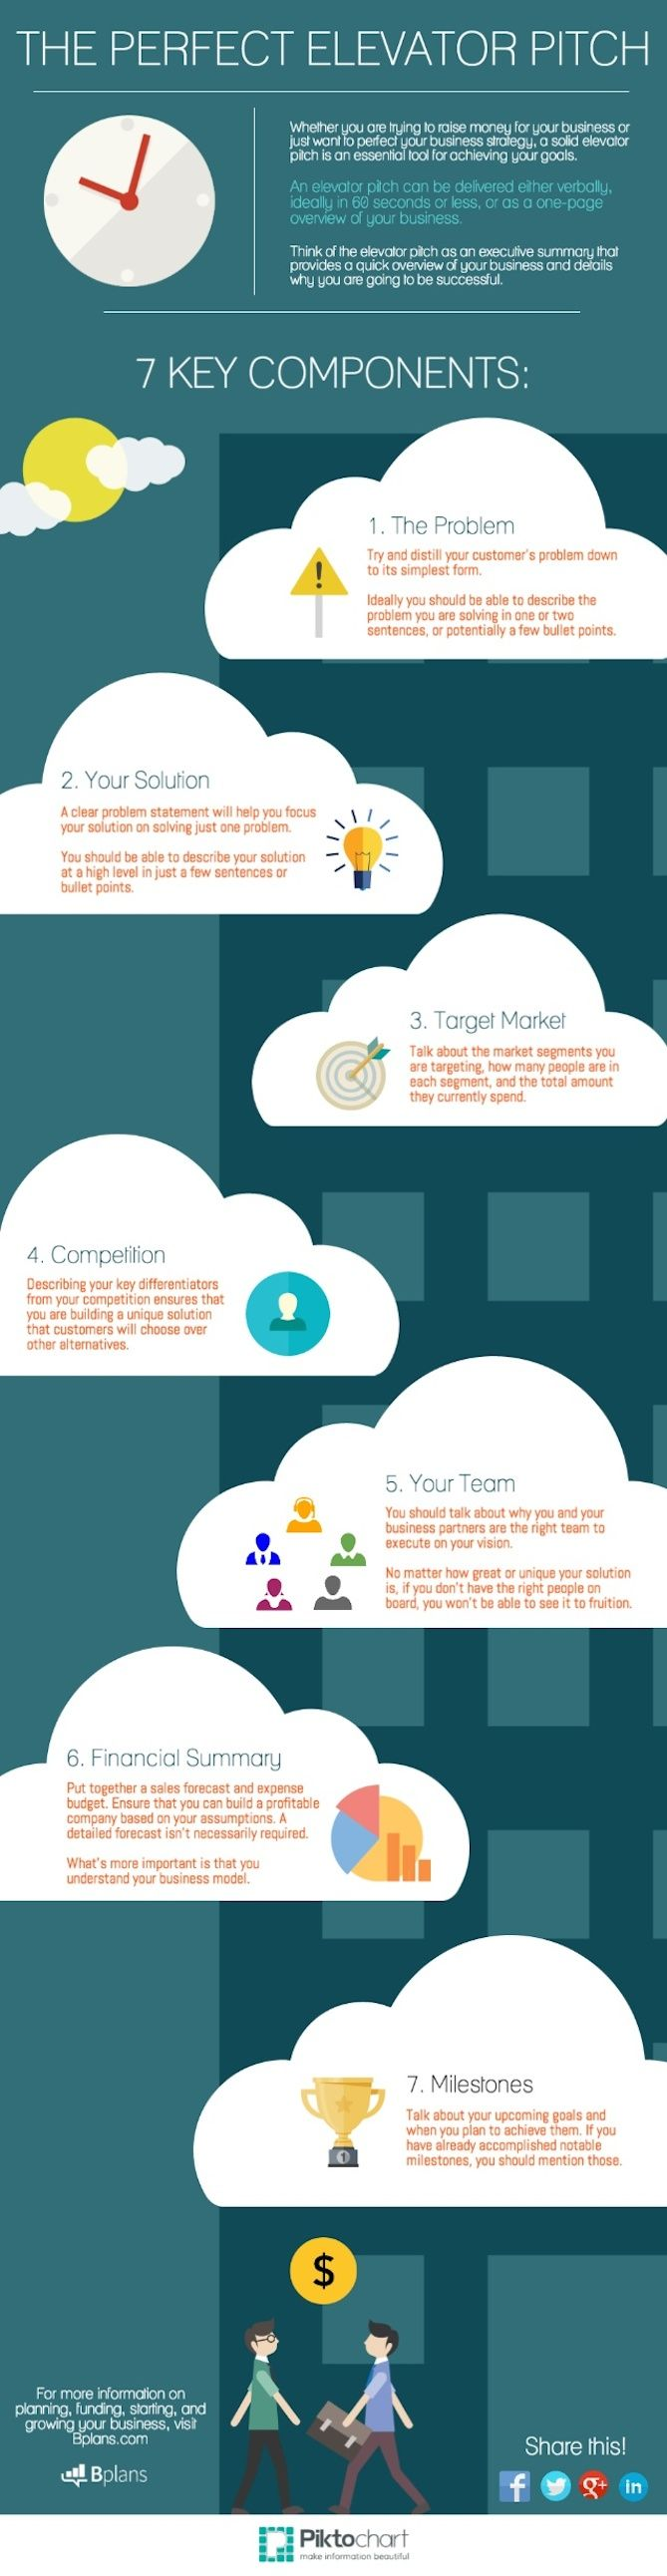 The 7 Components of a Perfect Elevator Pitch [Infographic], via @HubSpot #InboundMarketing #Marketing